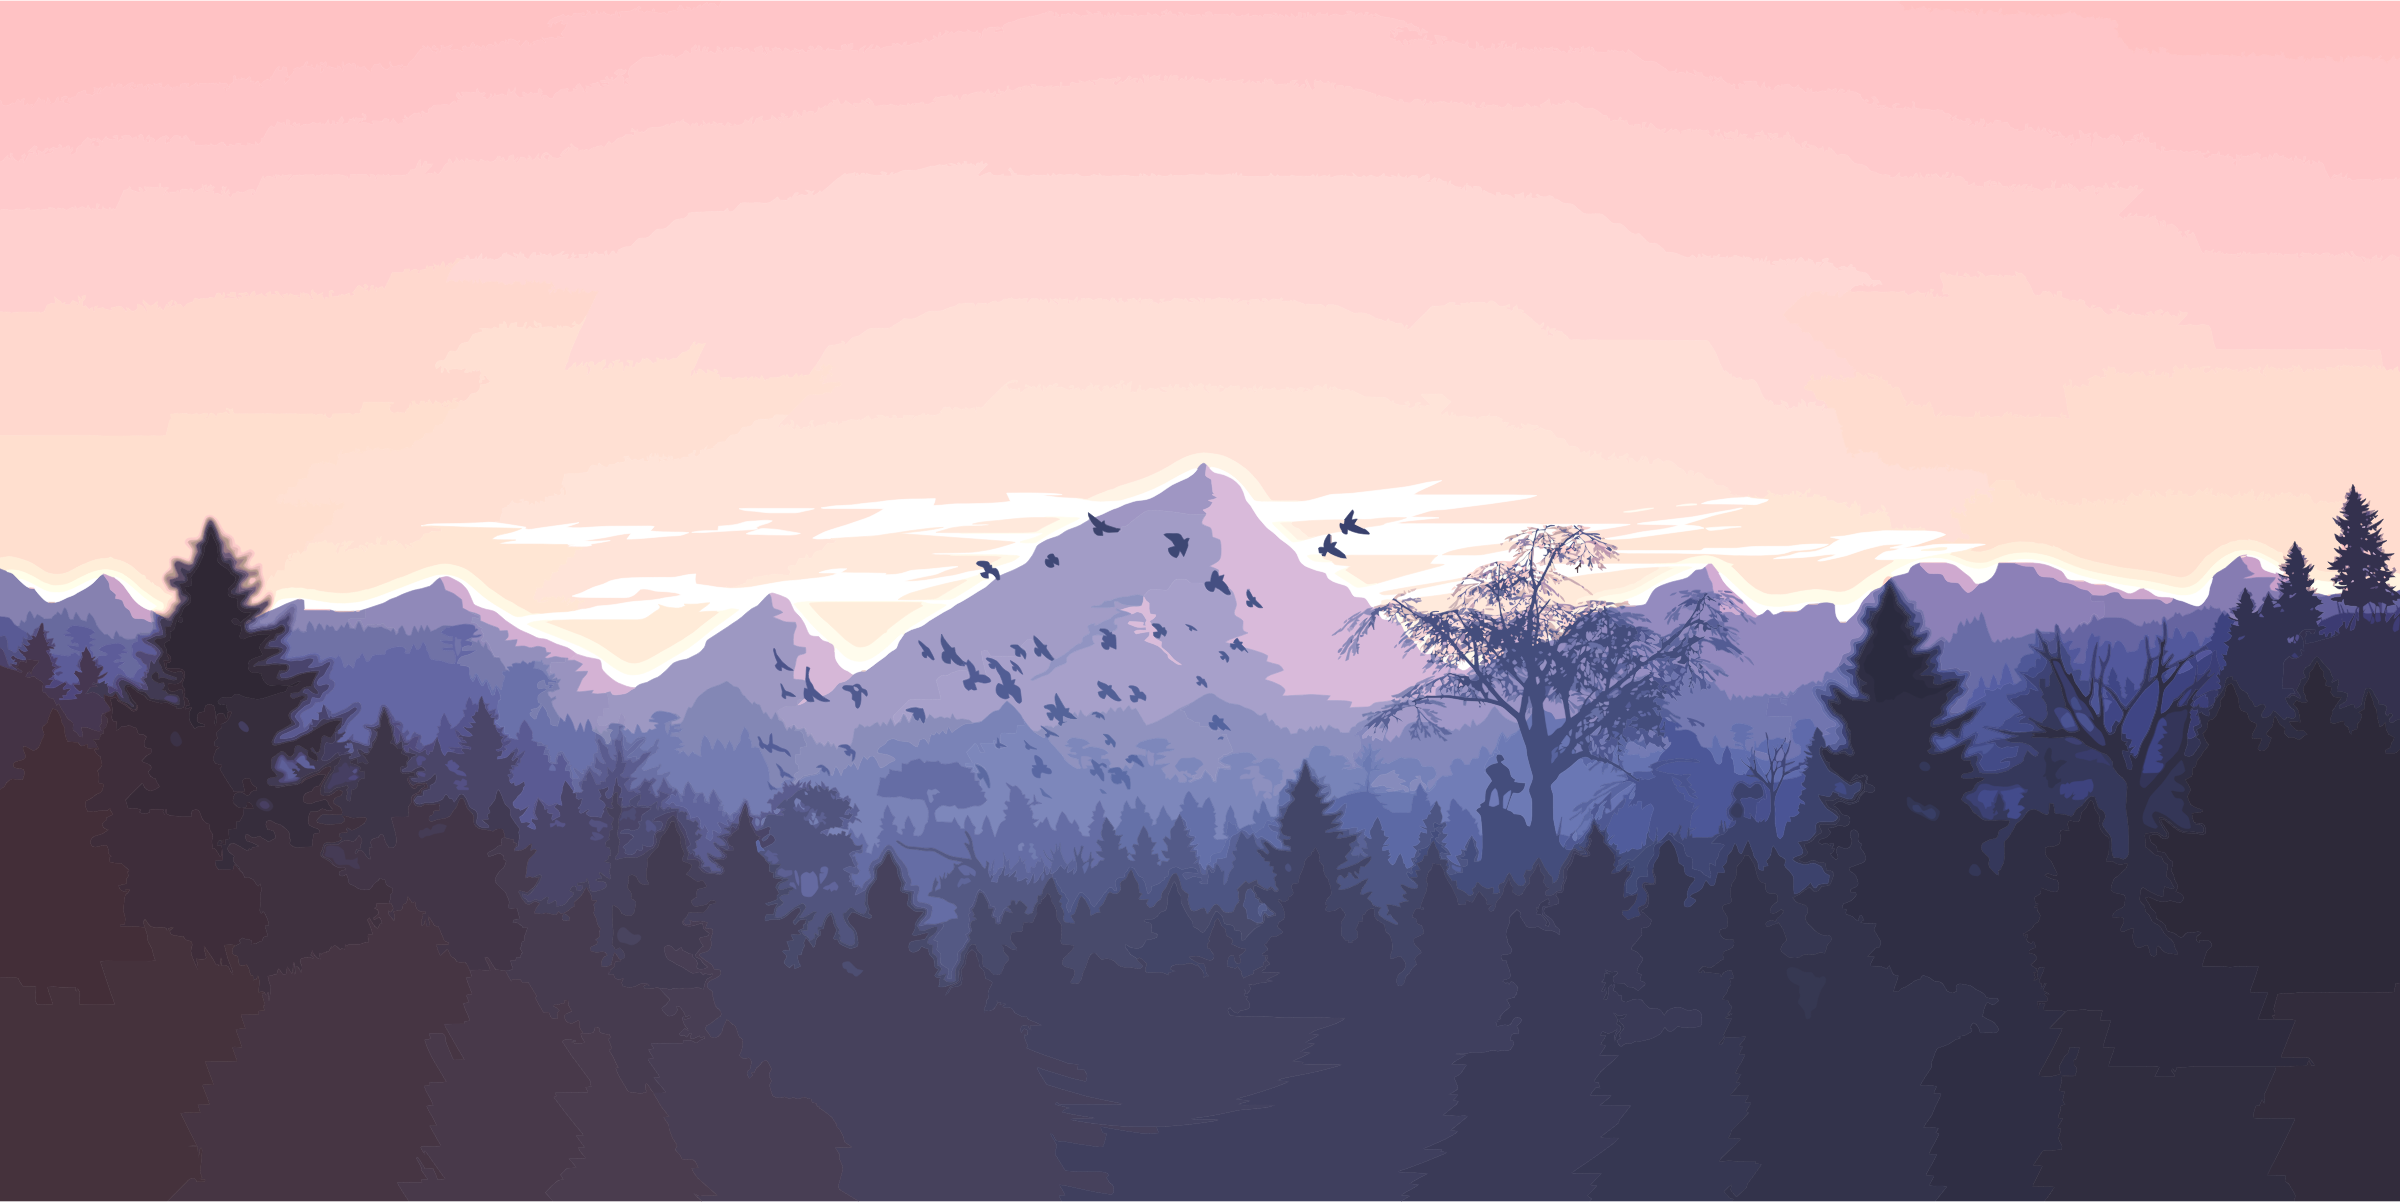 Forrest And Mountains Illustration by GDJ